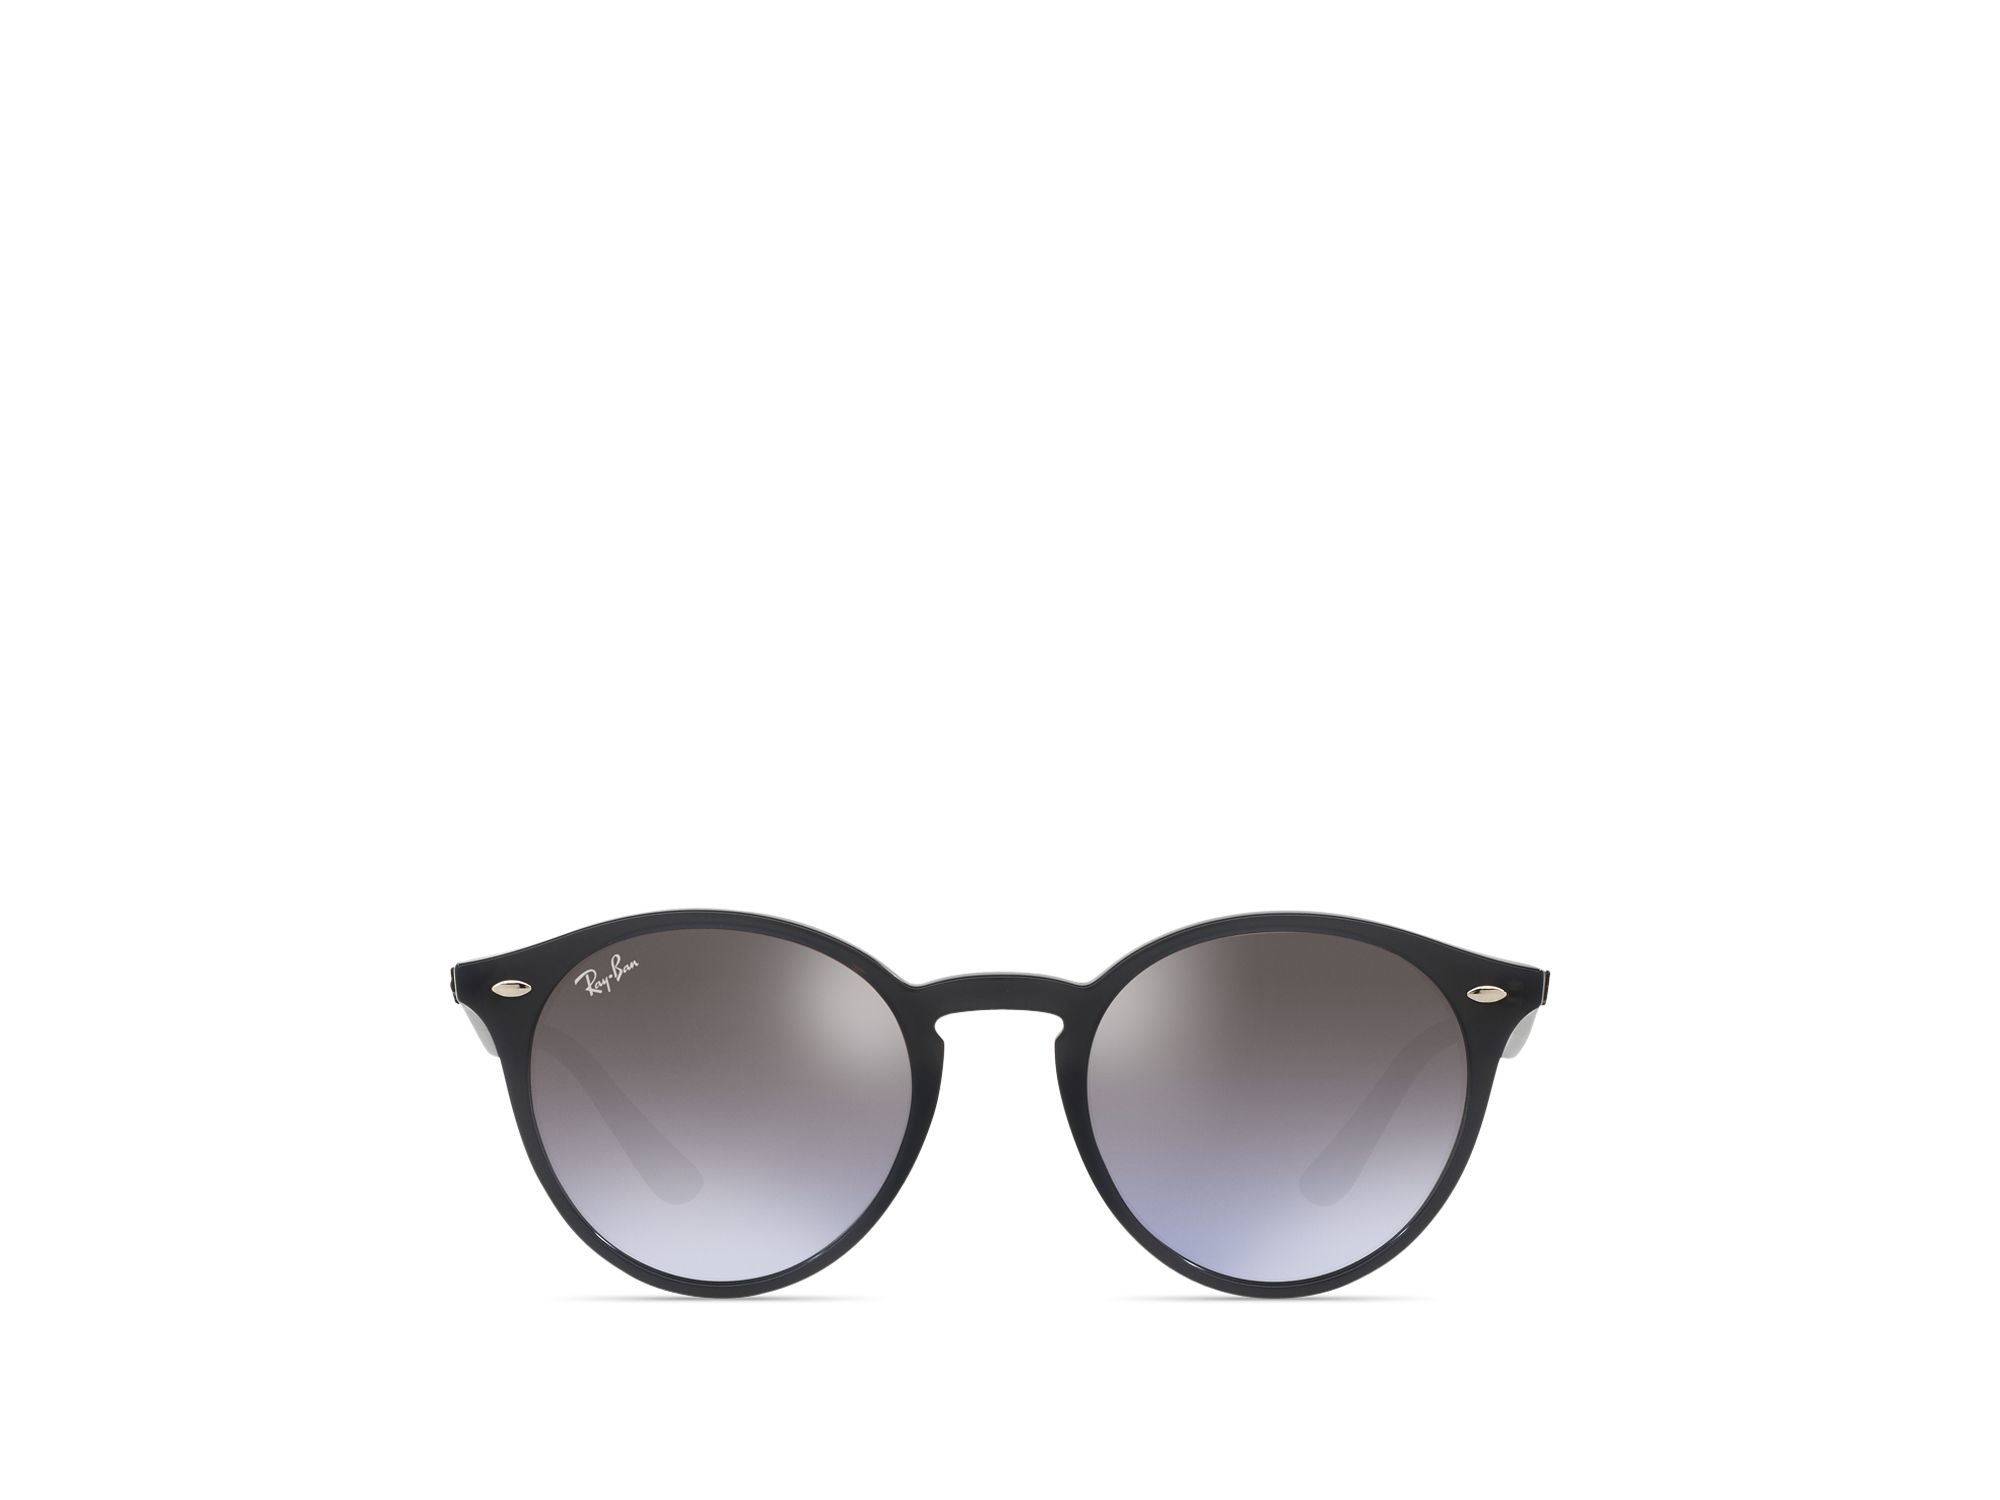 Sunglasses High Street  ray ban high street round sunglasses 49mm in black lyst